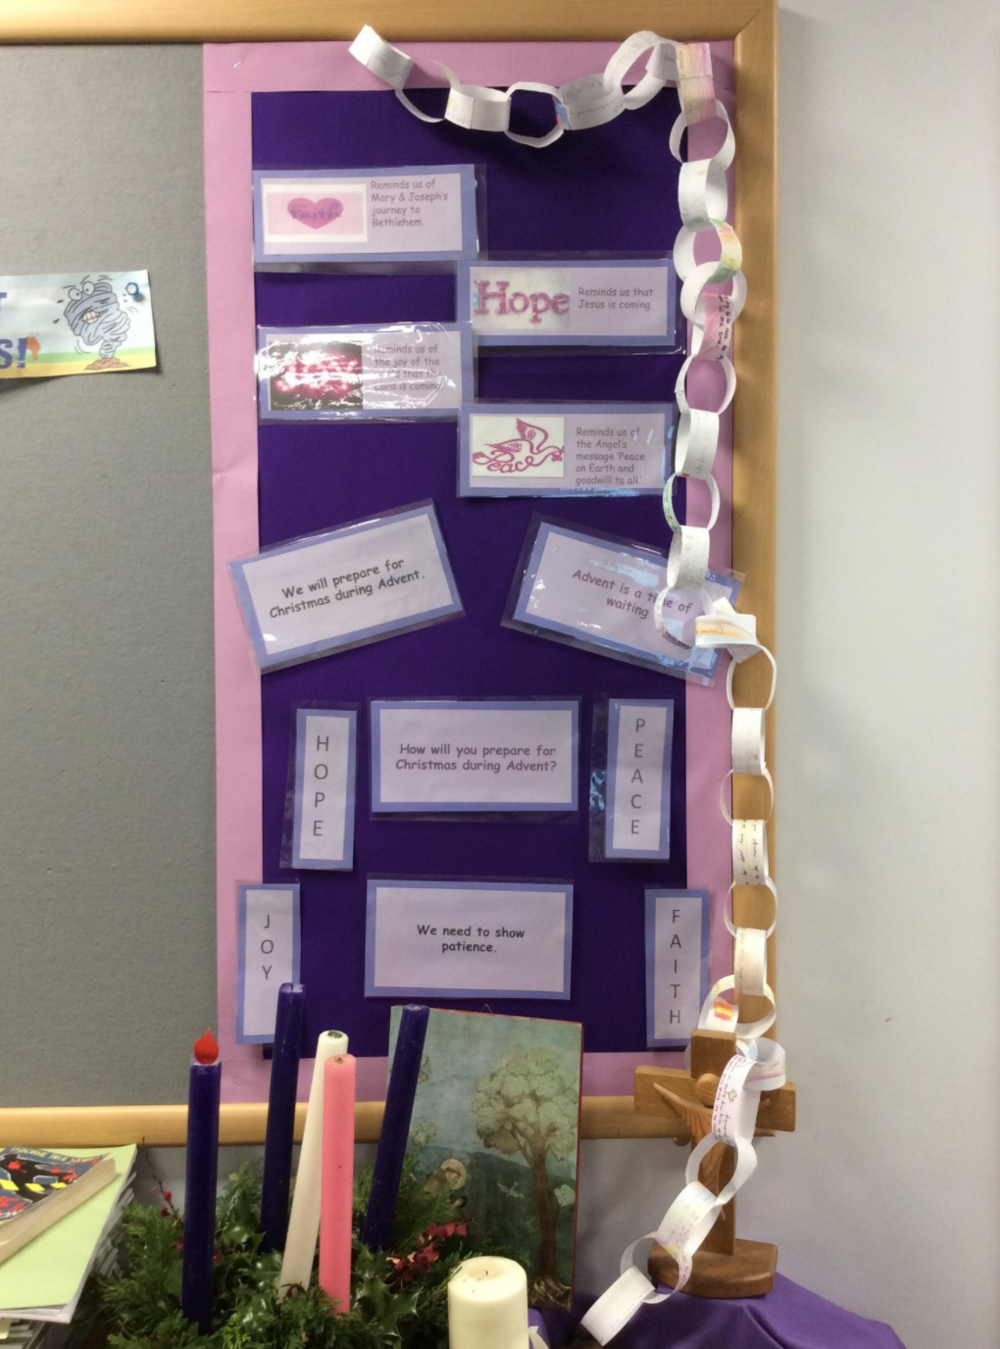 St. Francis of Assisi's Year 4 made Advent promises too